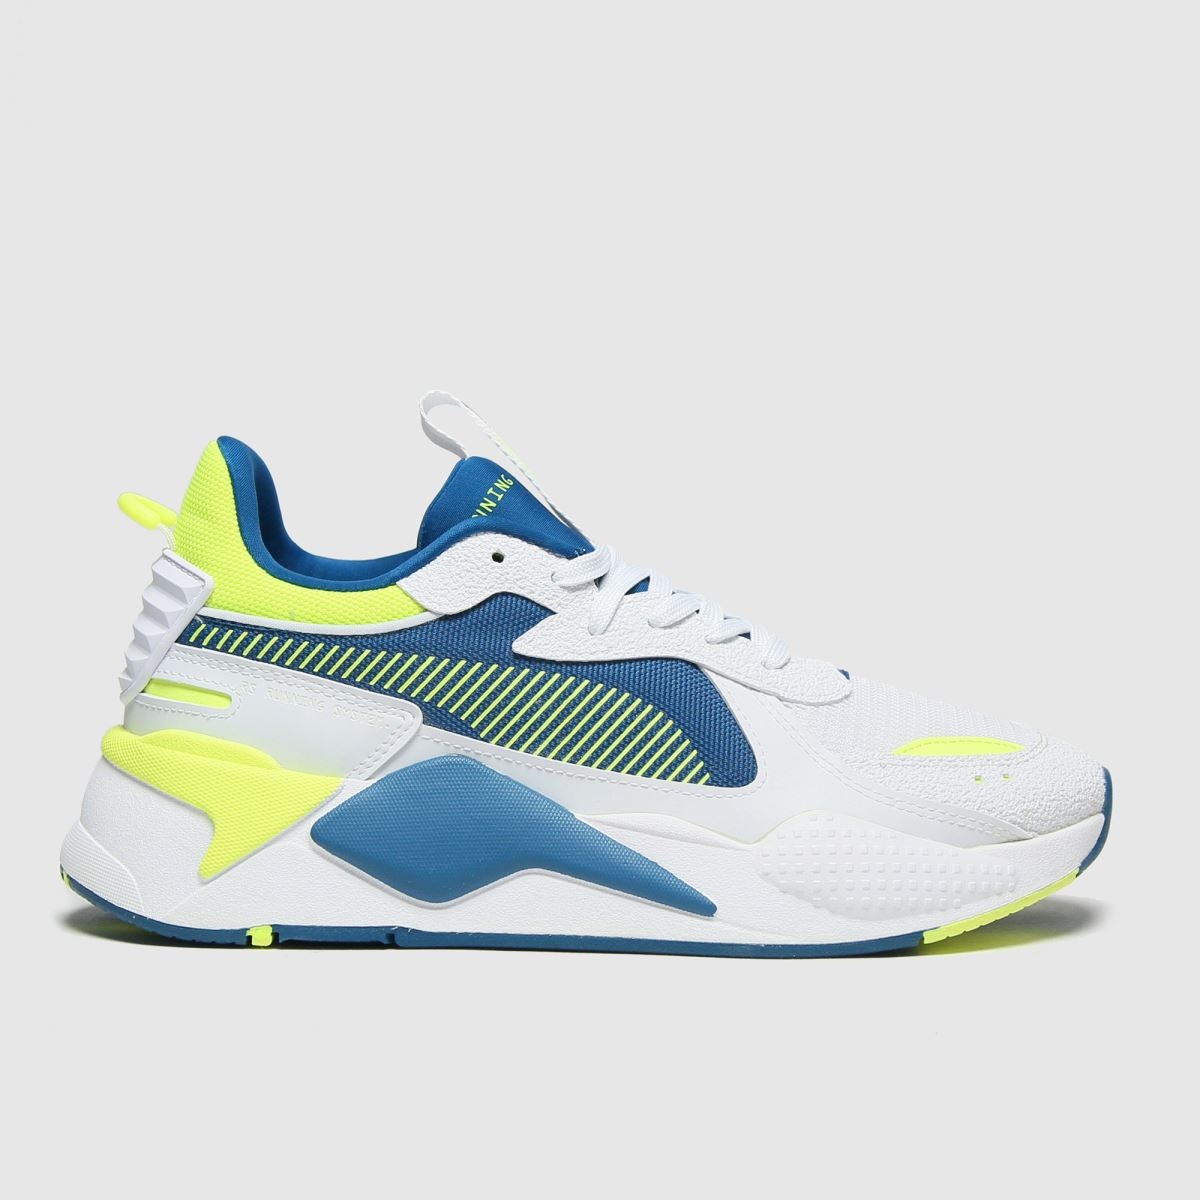 PUMA White & Yellow Rs-x Hard Drive Trainers